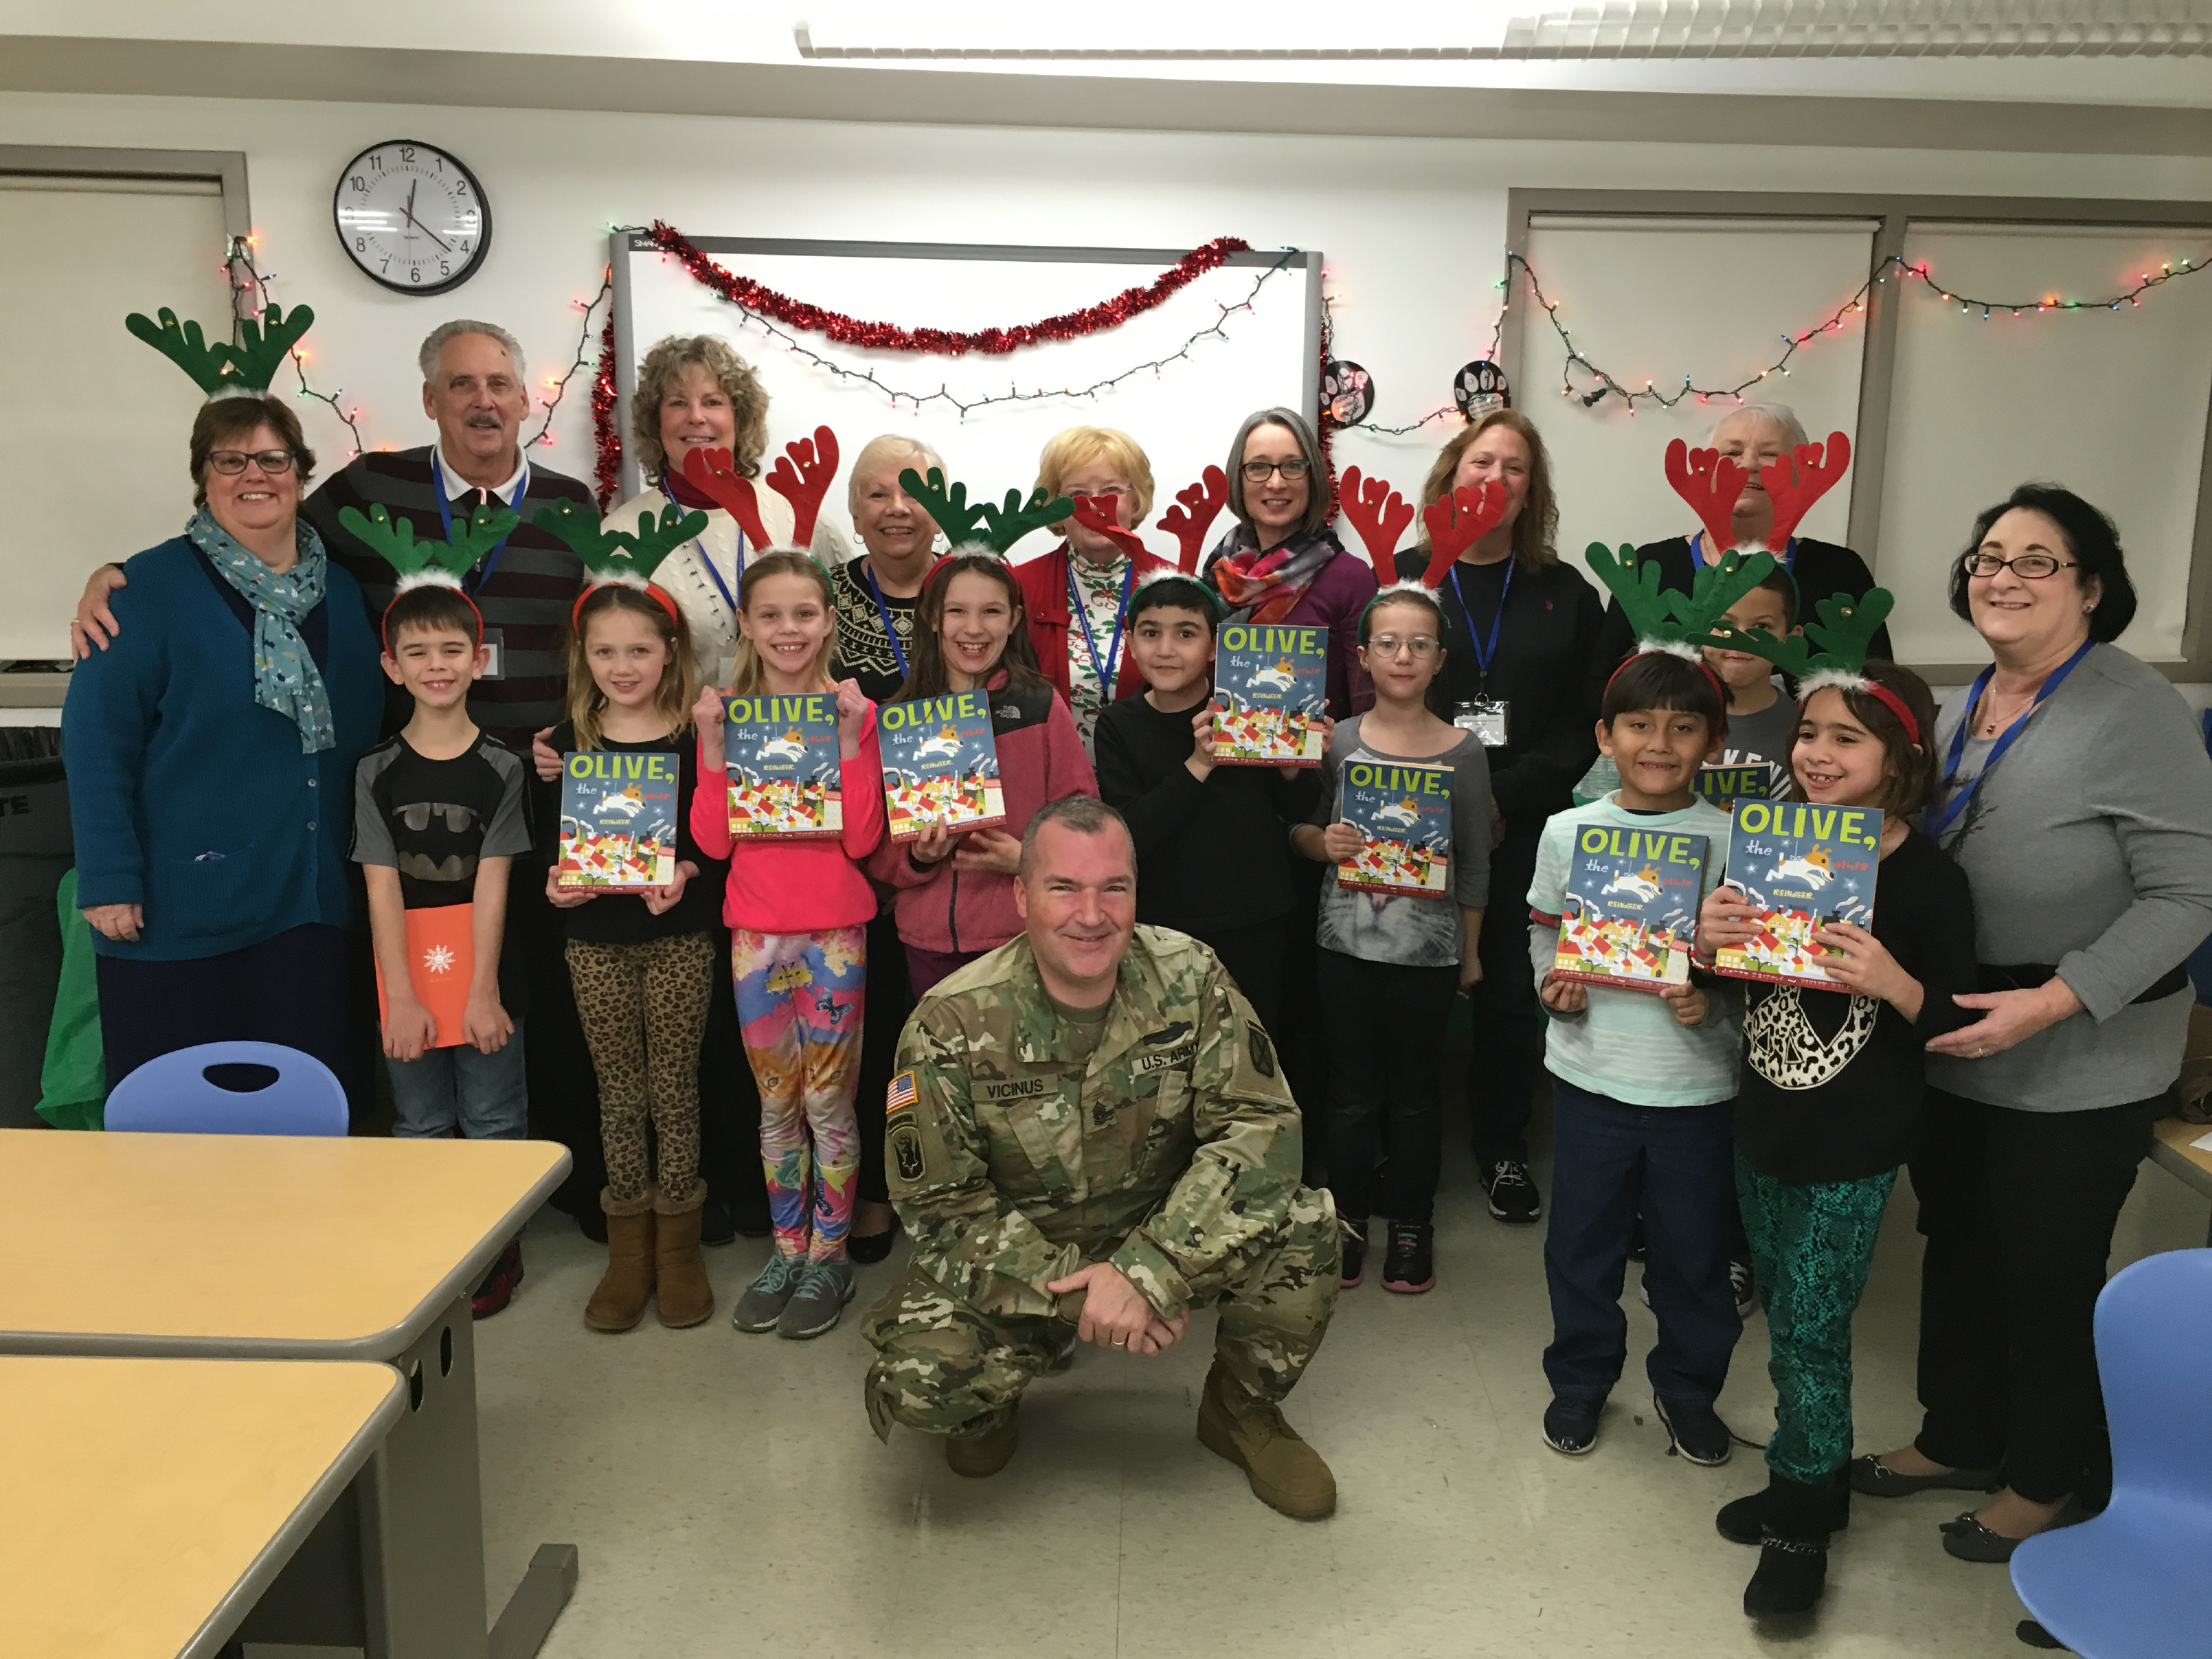 As part of its Community Outreach Program, Plainville's VFW Post 574 donated books to the Plainville Community Schools Reading Partners Program, which is in all three elementary schools. Pictured: Reading Partners Program participants at Louis Toffolon Elementary School pose with Principal Lynn Logoyke and their book donations presented by Command Sergeant Major Paul Vicinus, front.